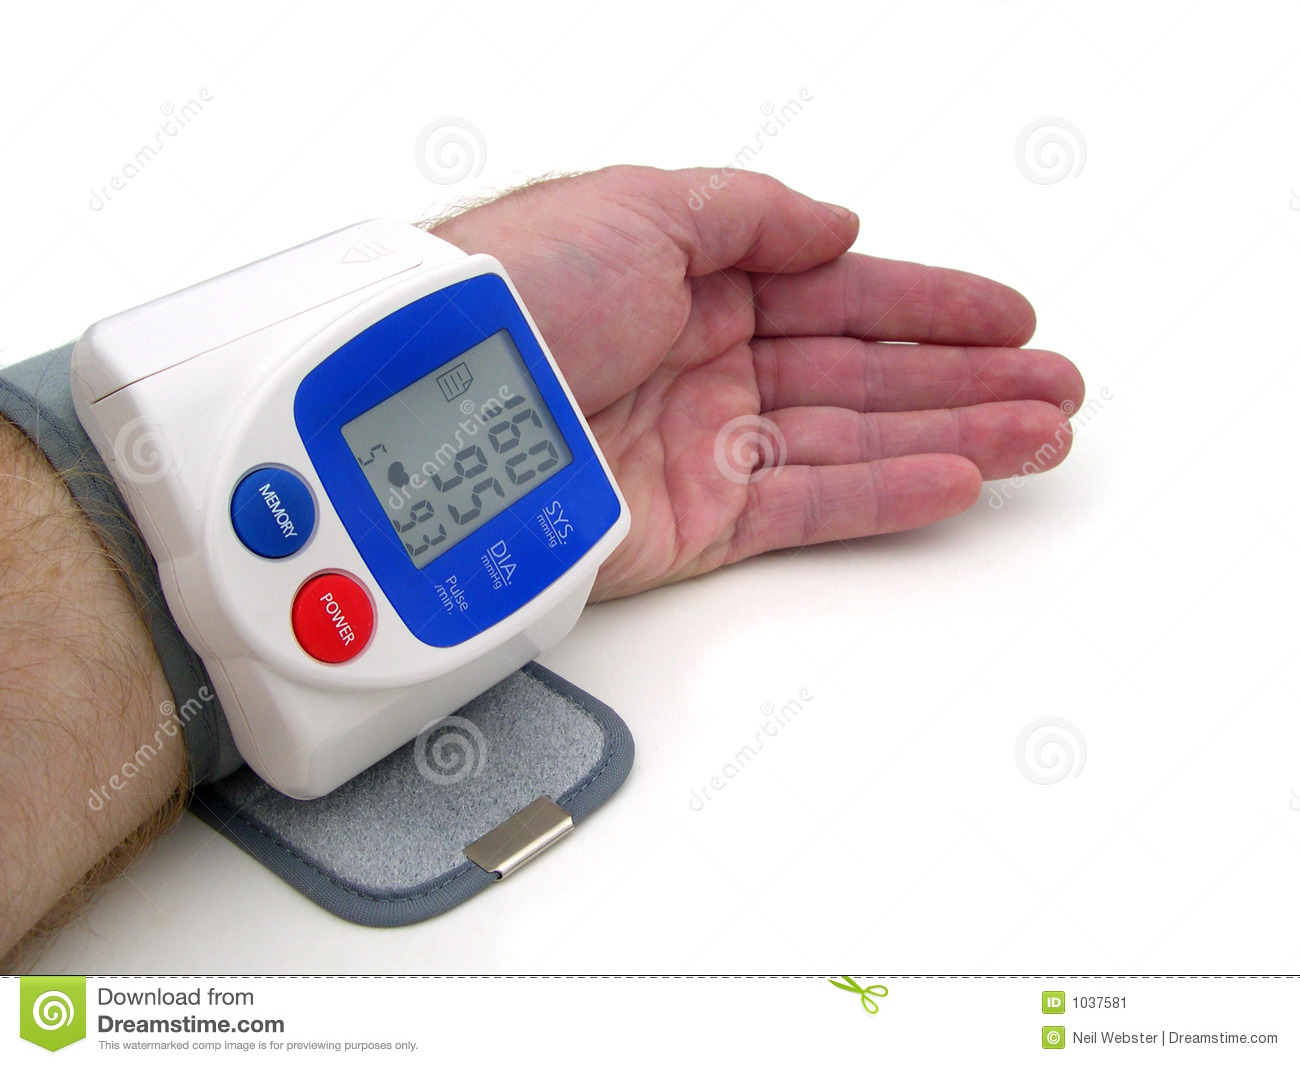 how to take manual blood pressure on wrist